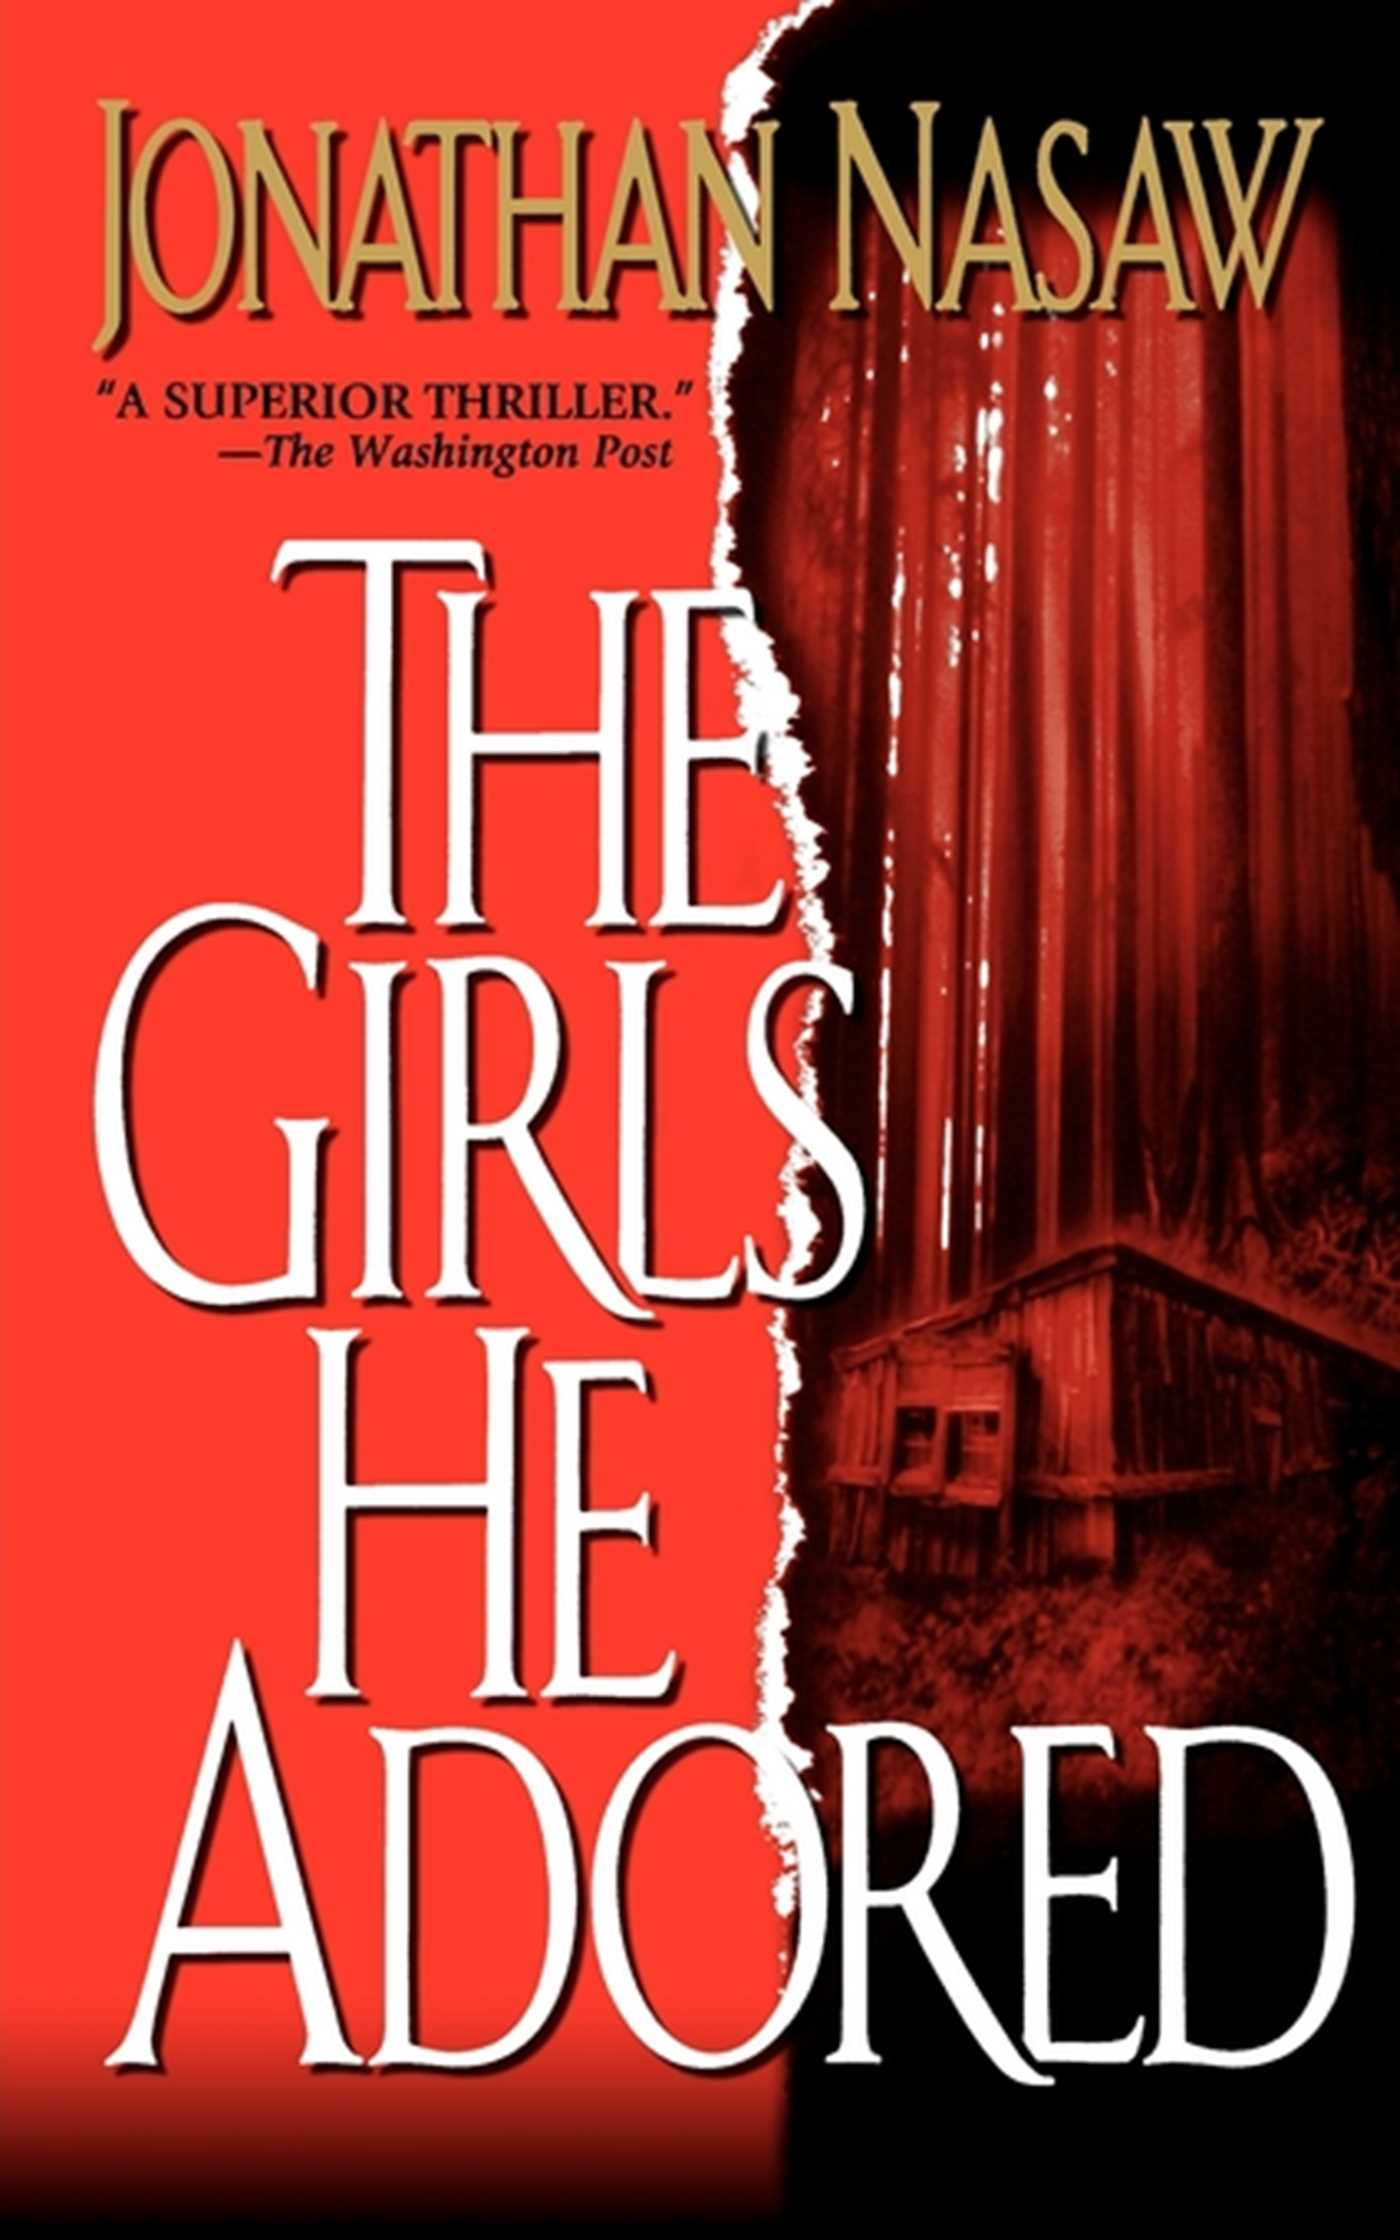 The girls he adored 9780743419444 hr